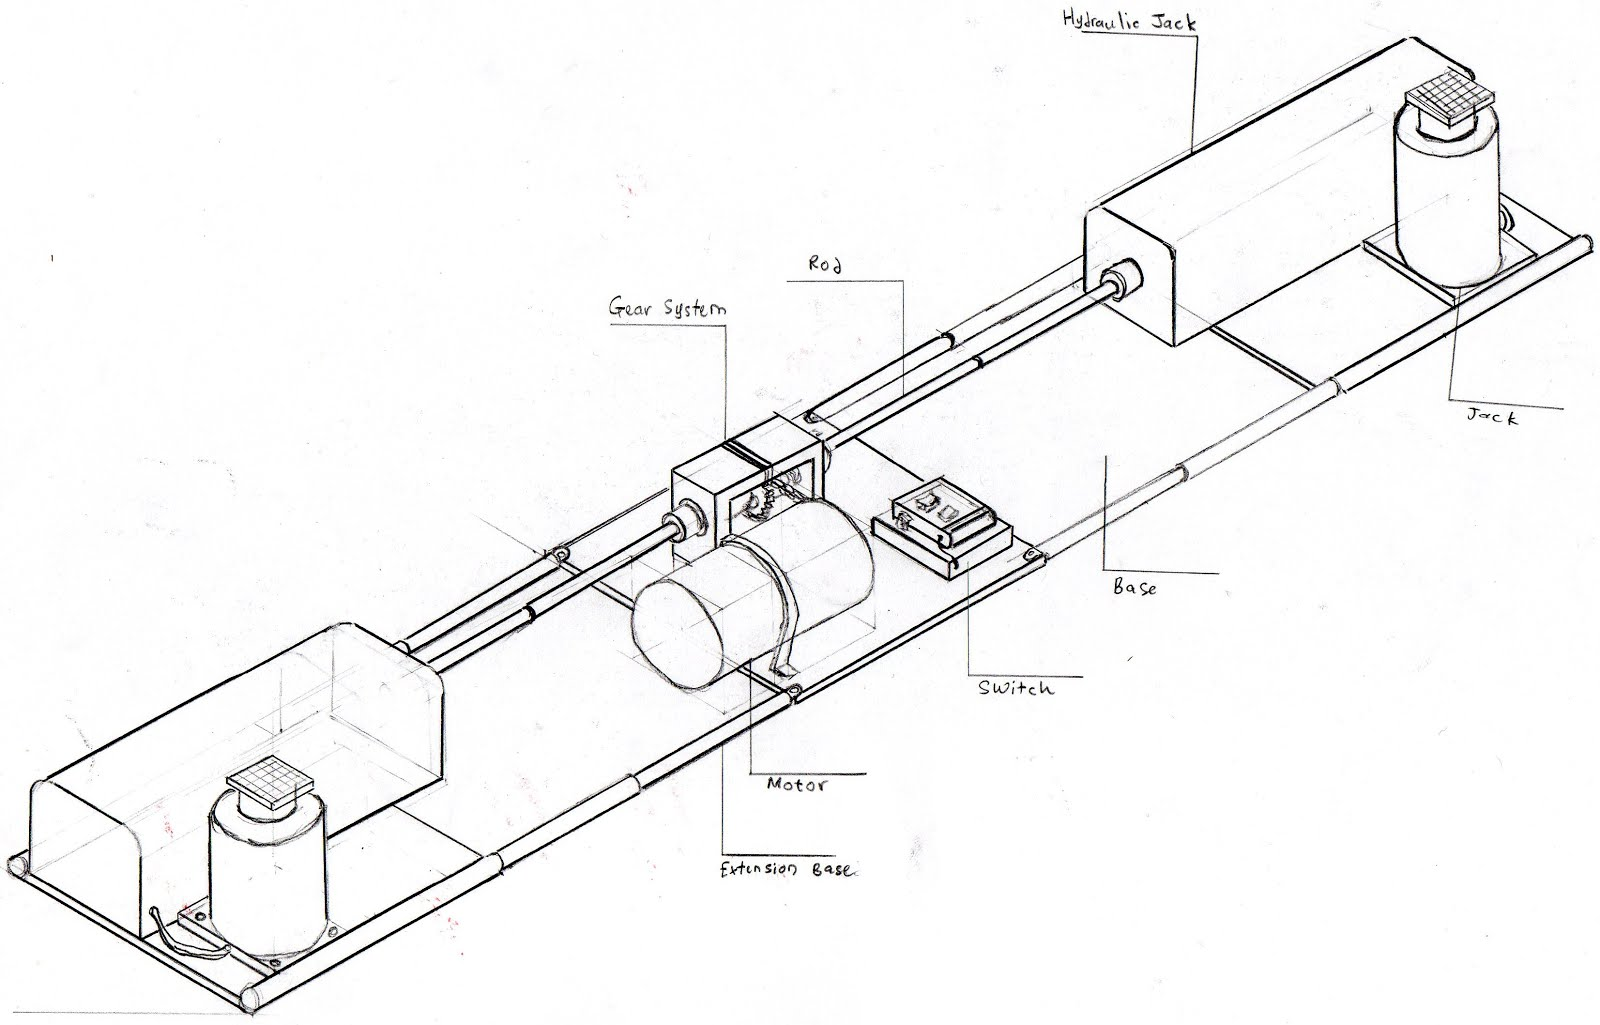 Proposal To Design A Portable Motorized Double Hydraulic Car Jack Diagram Sketch Of The